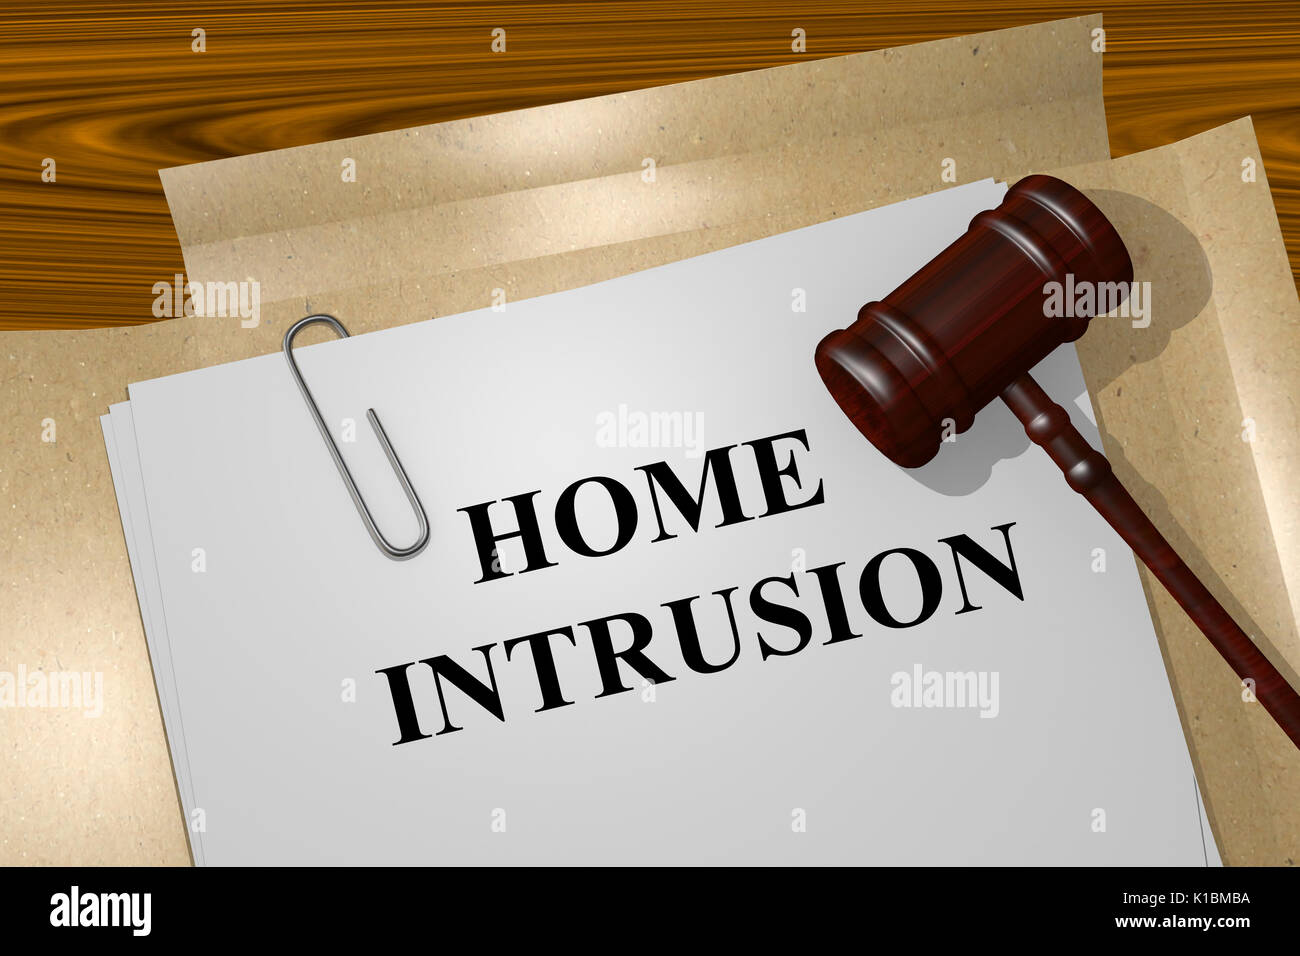 Render illustration of Home Intrusion title on Legal Documents - Stock Image